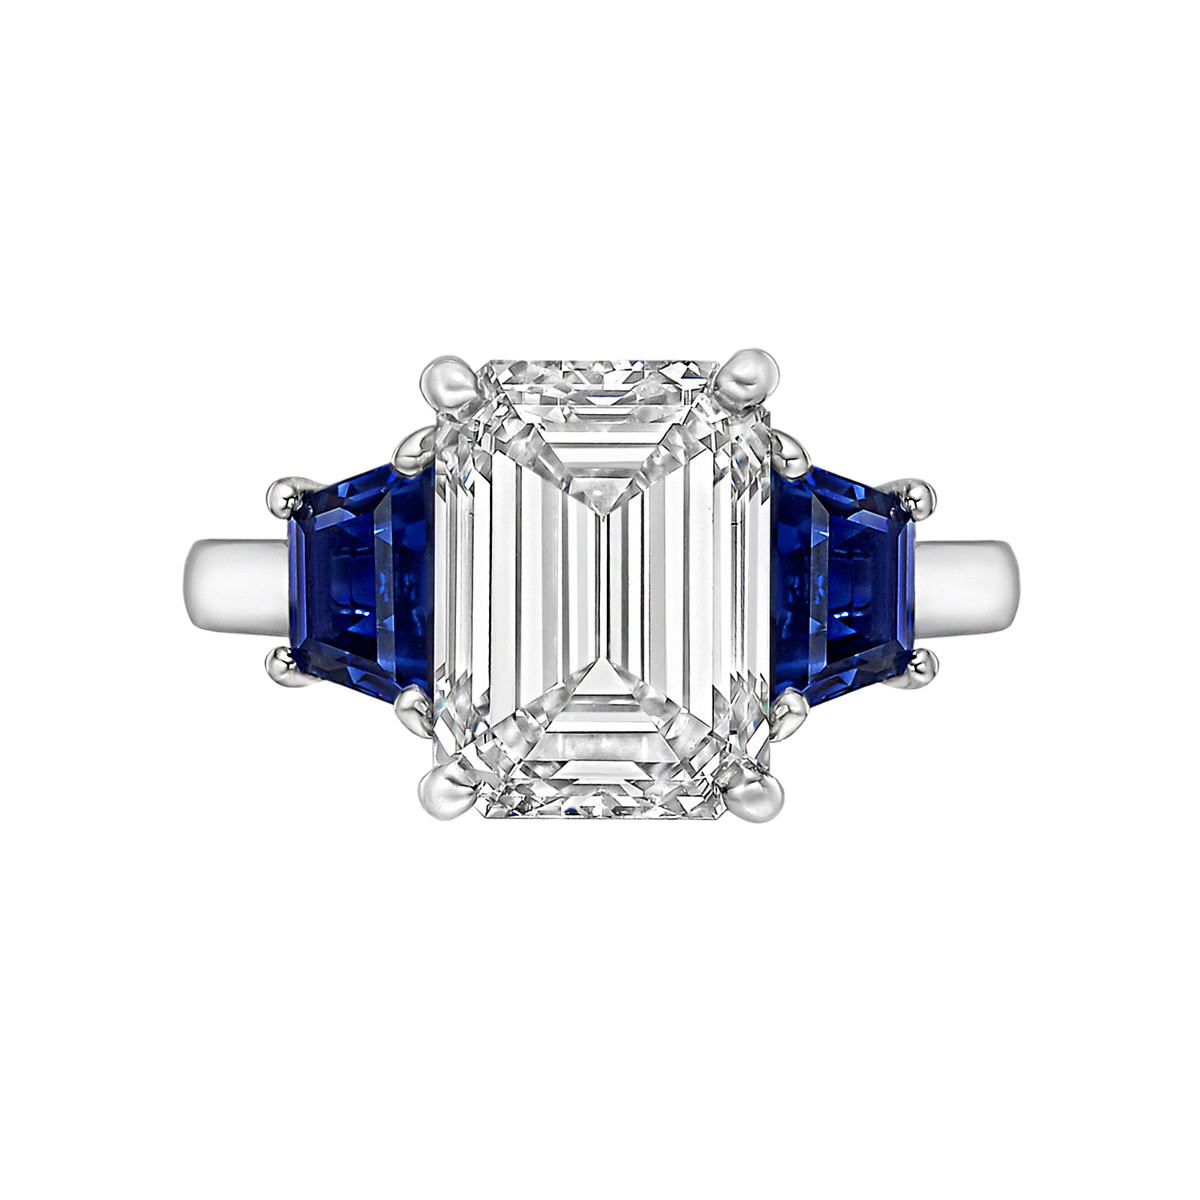 4.11ct Emerald-Cut Diamond Ring (F/VS2)